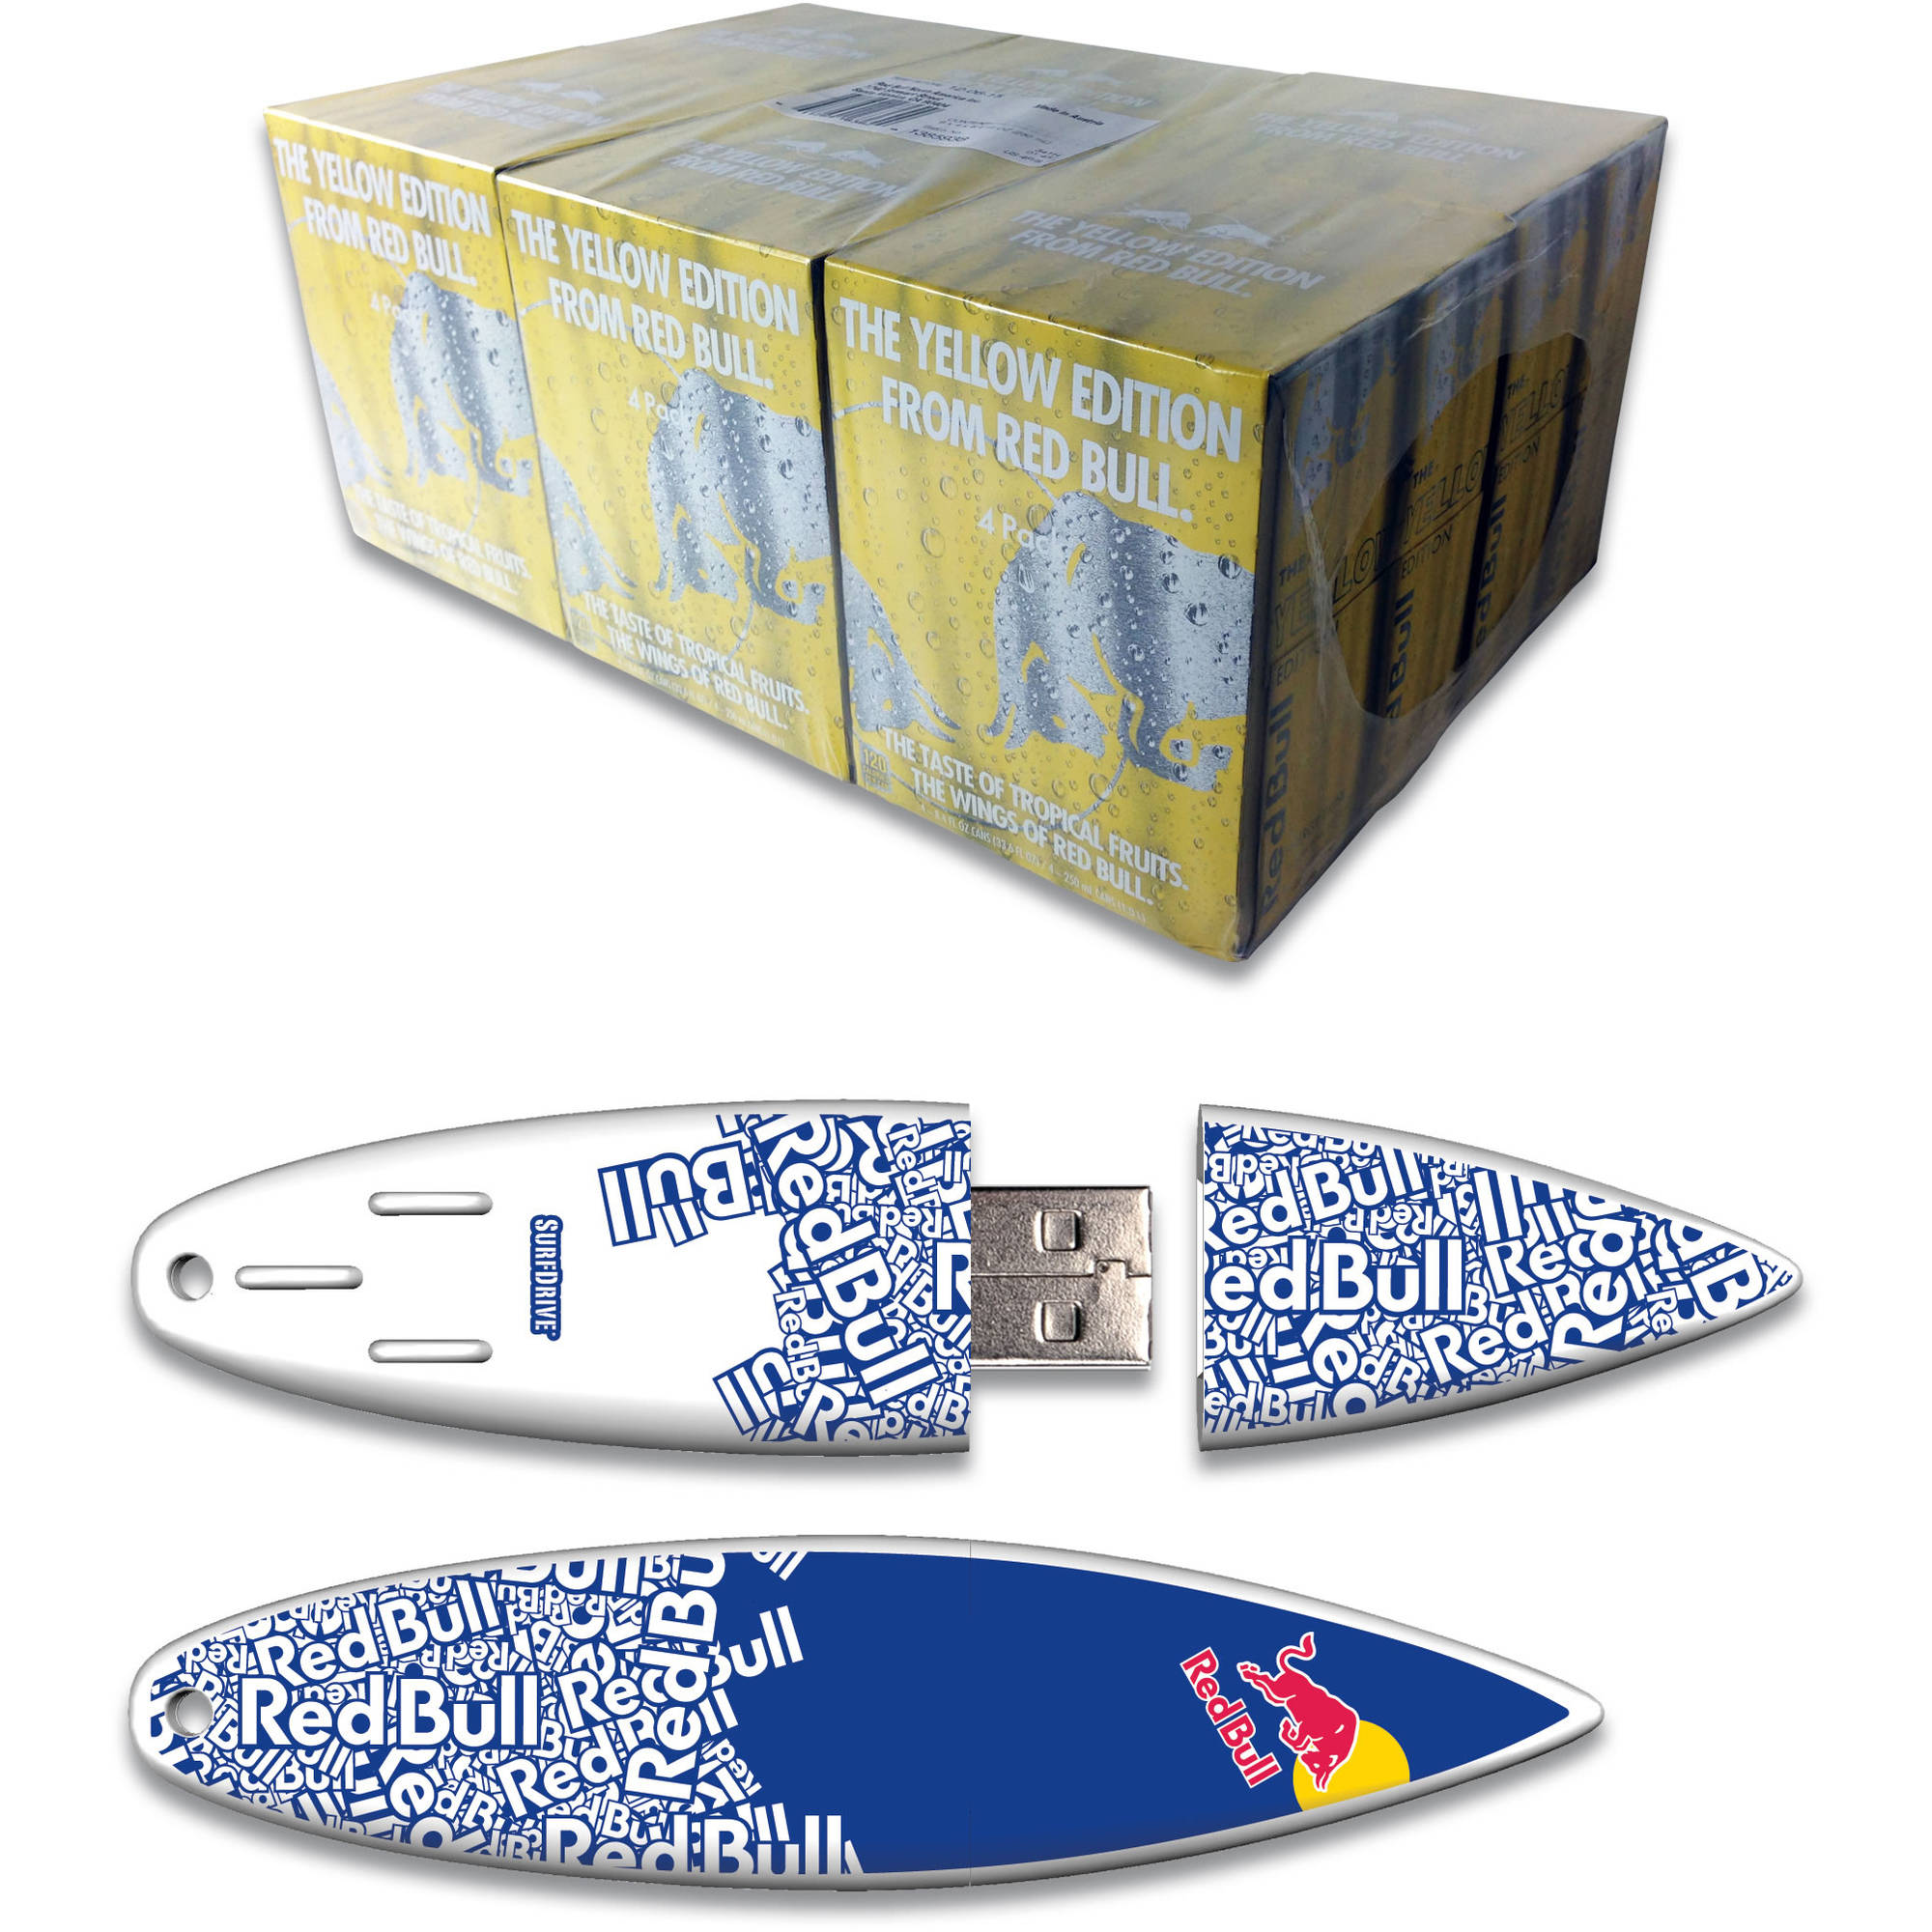 Red Bull 24-Pack 8.4-Ounce Yellow Edition Energy Drink and 8GB Blue Text USB SurfDrive